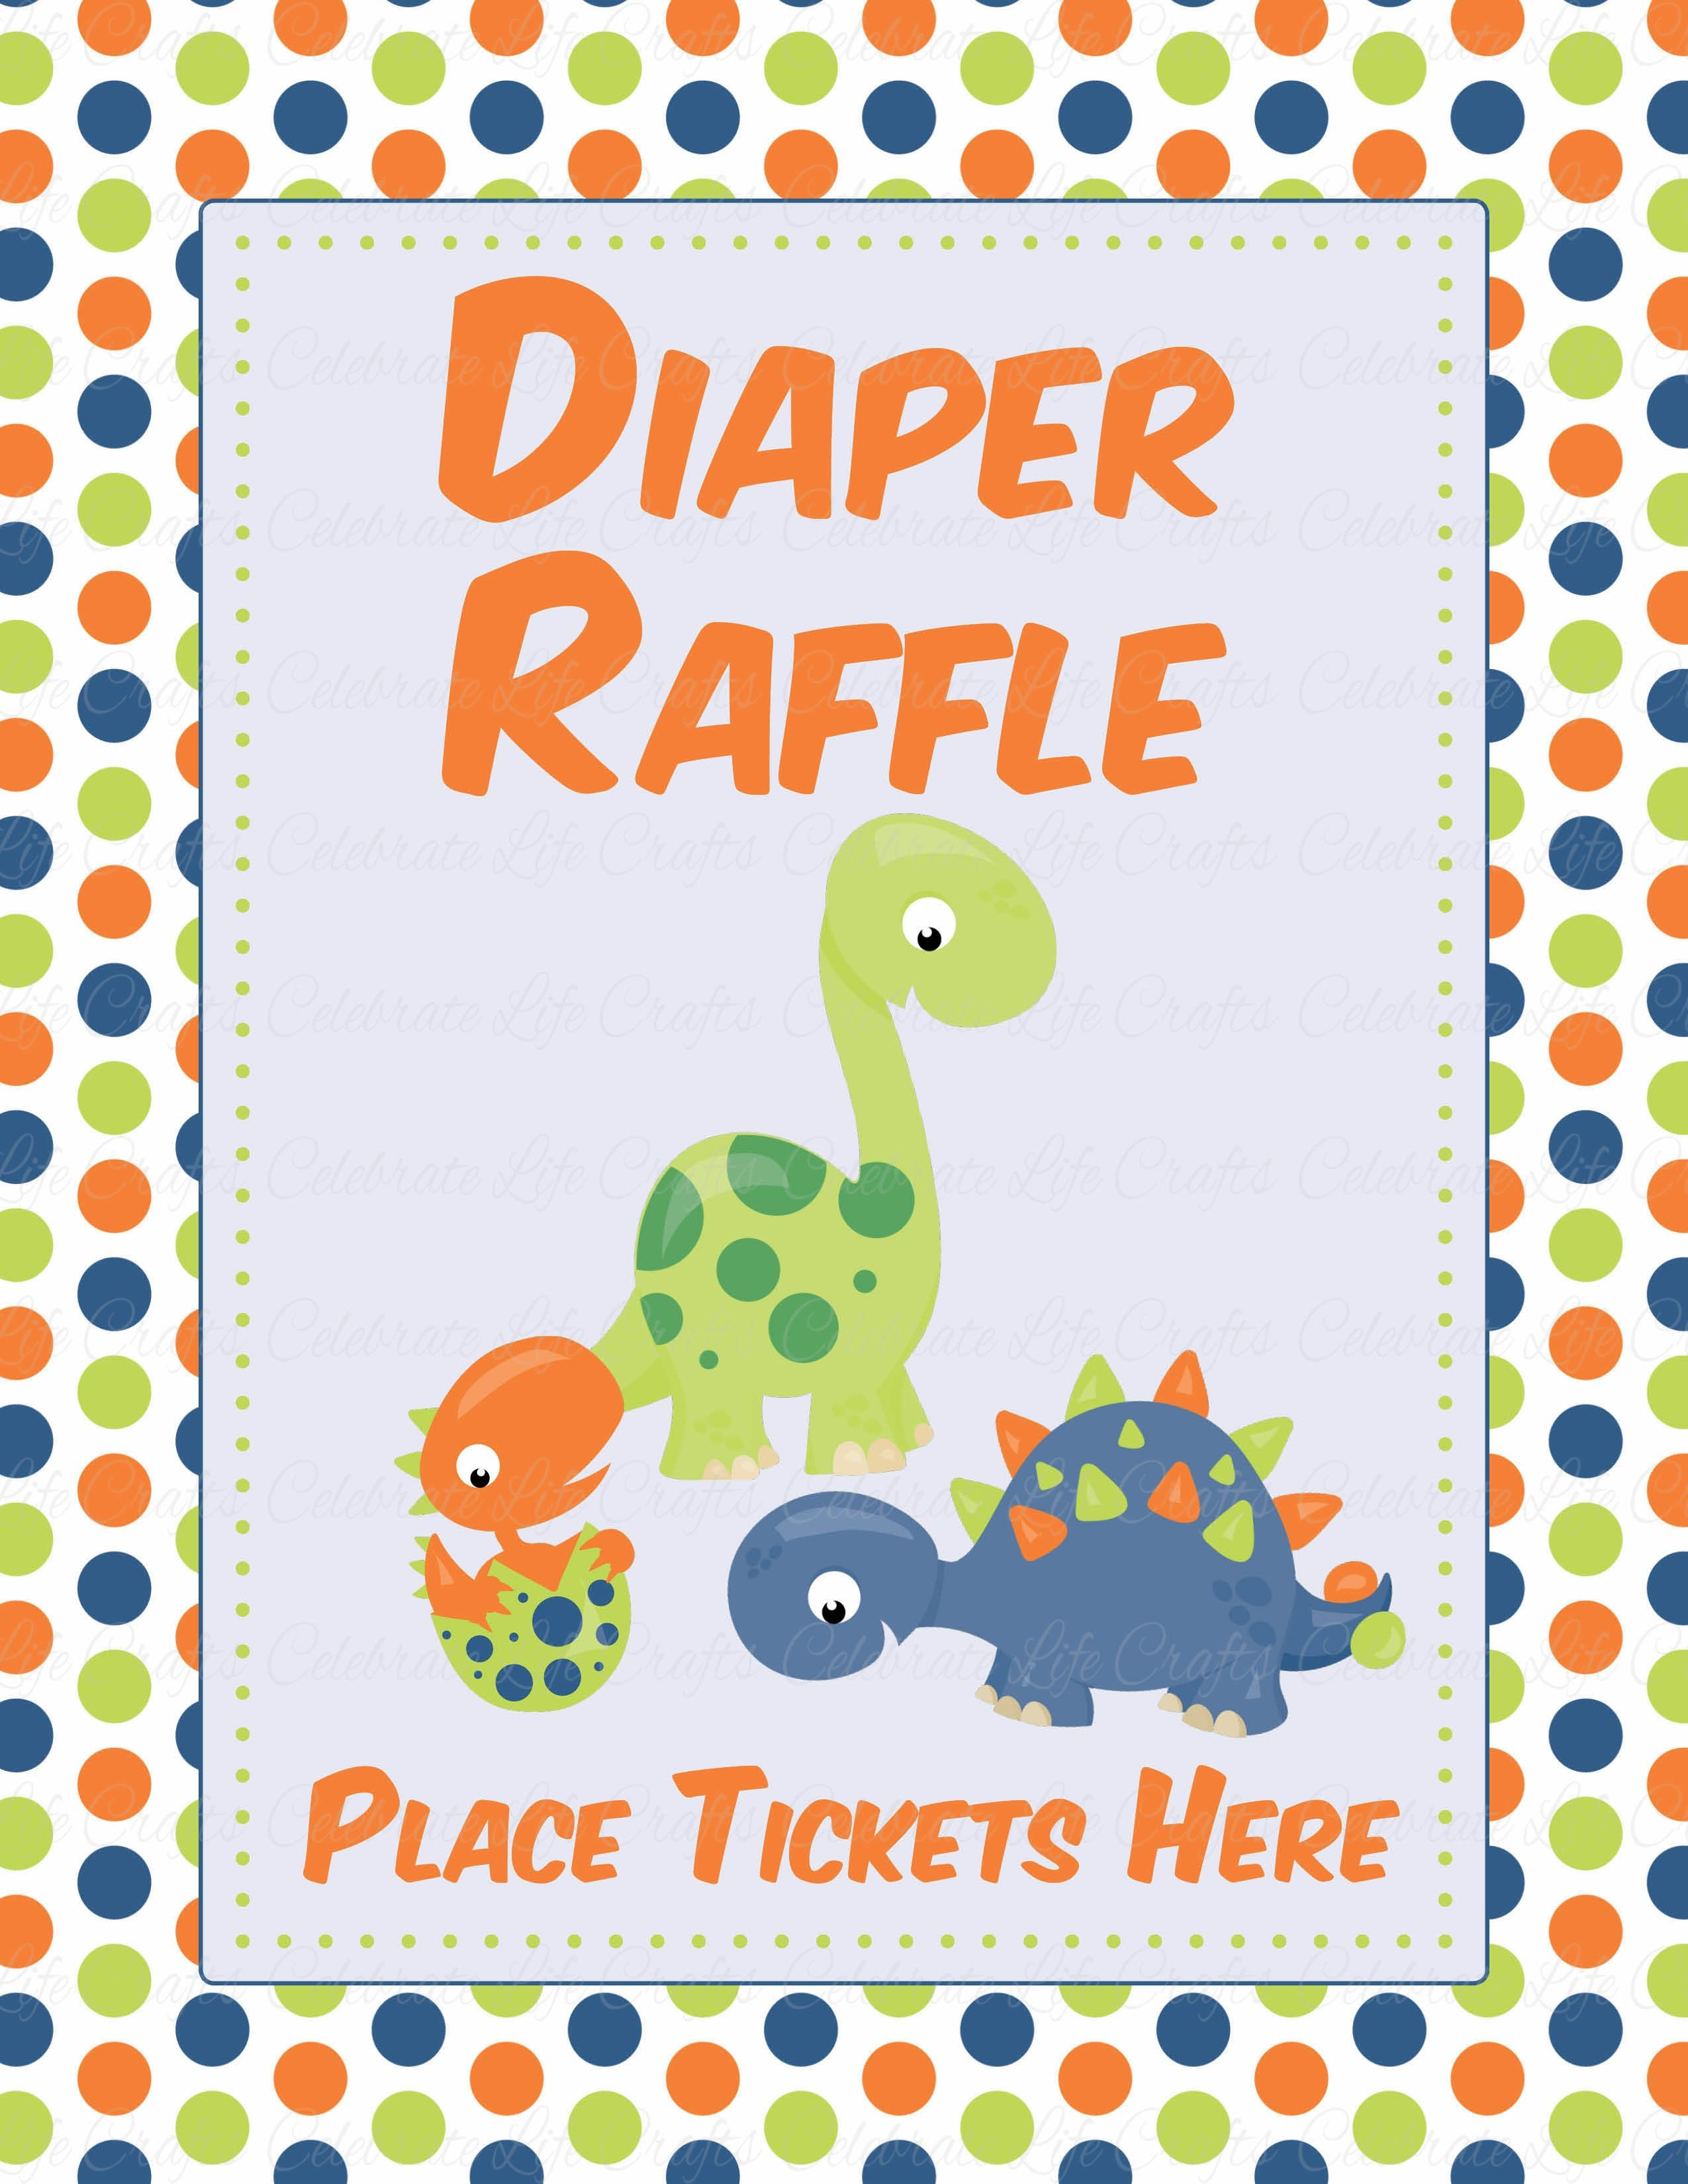 Diaper Raffle Tickets for Baby Shower - Dinosaur Baby Shower Theme ...